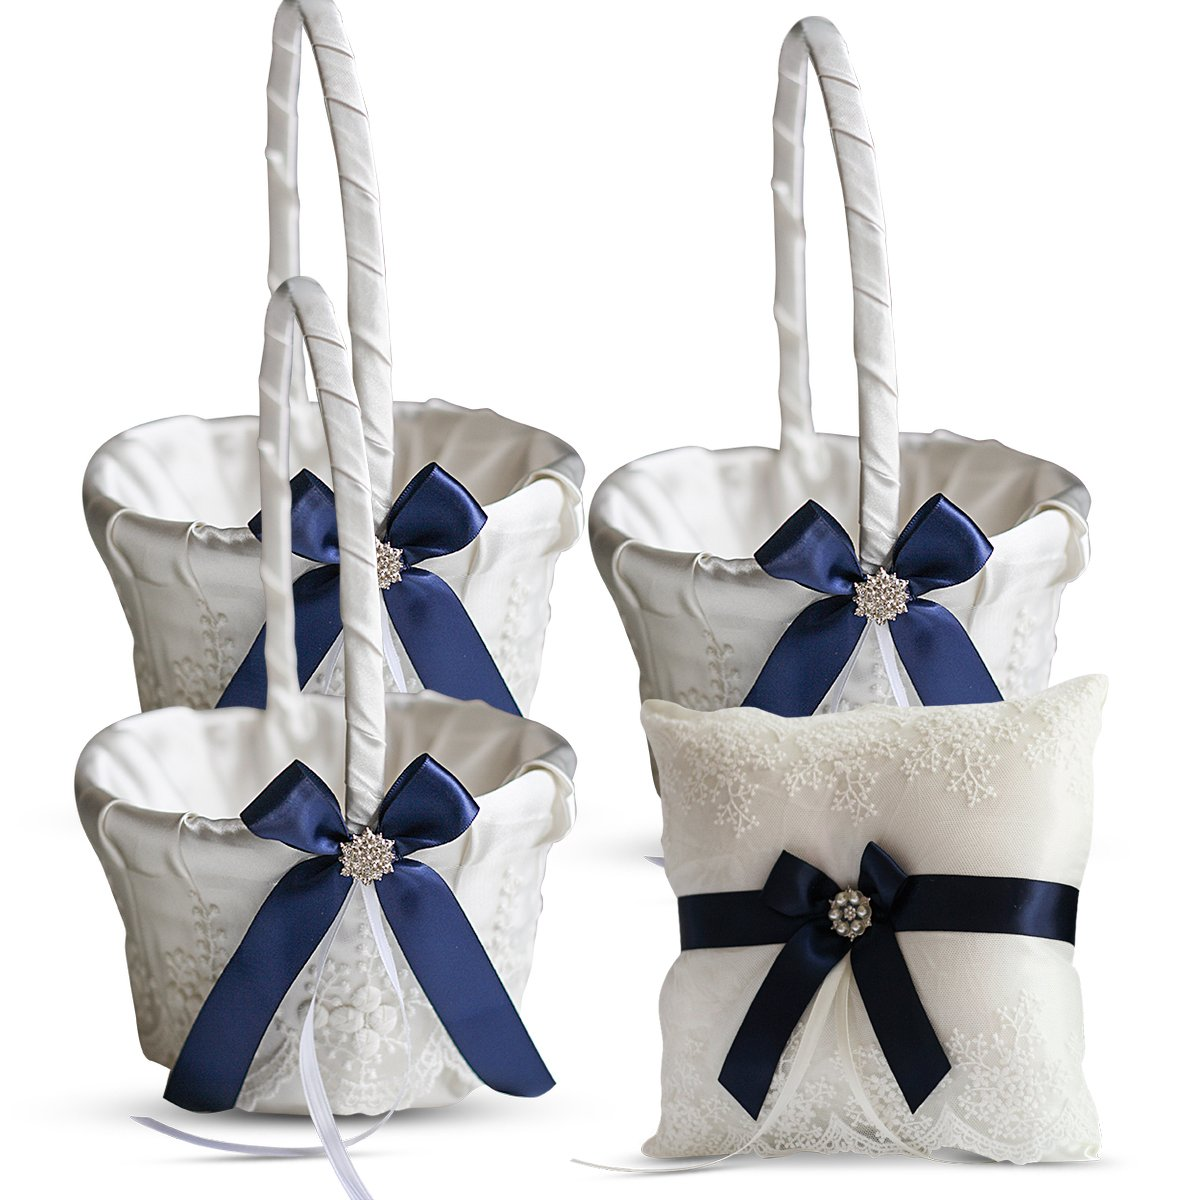 Roman Store Ivory Ring Bearer Pillow and Basket Set | Lace Collection | Flower Girl & Welcome Basket for Guest | Handmade Wedding Baskets & Pillows (Navy Blue)